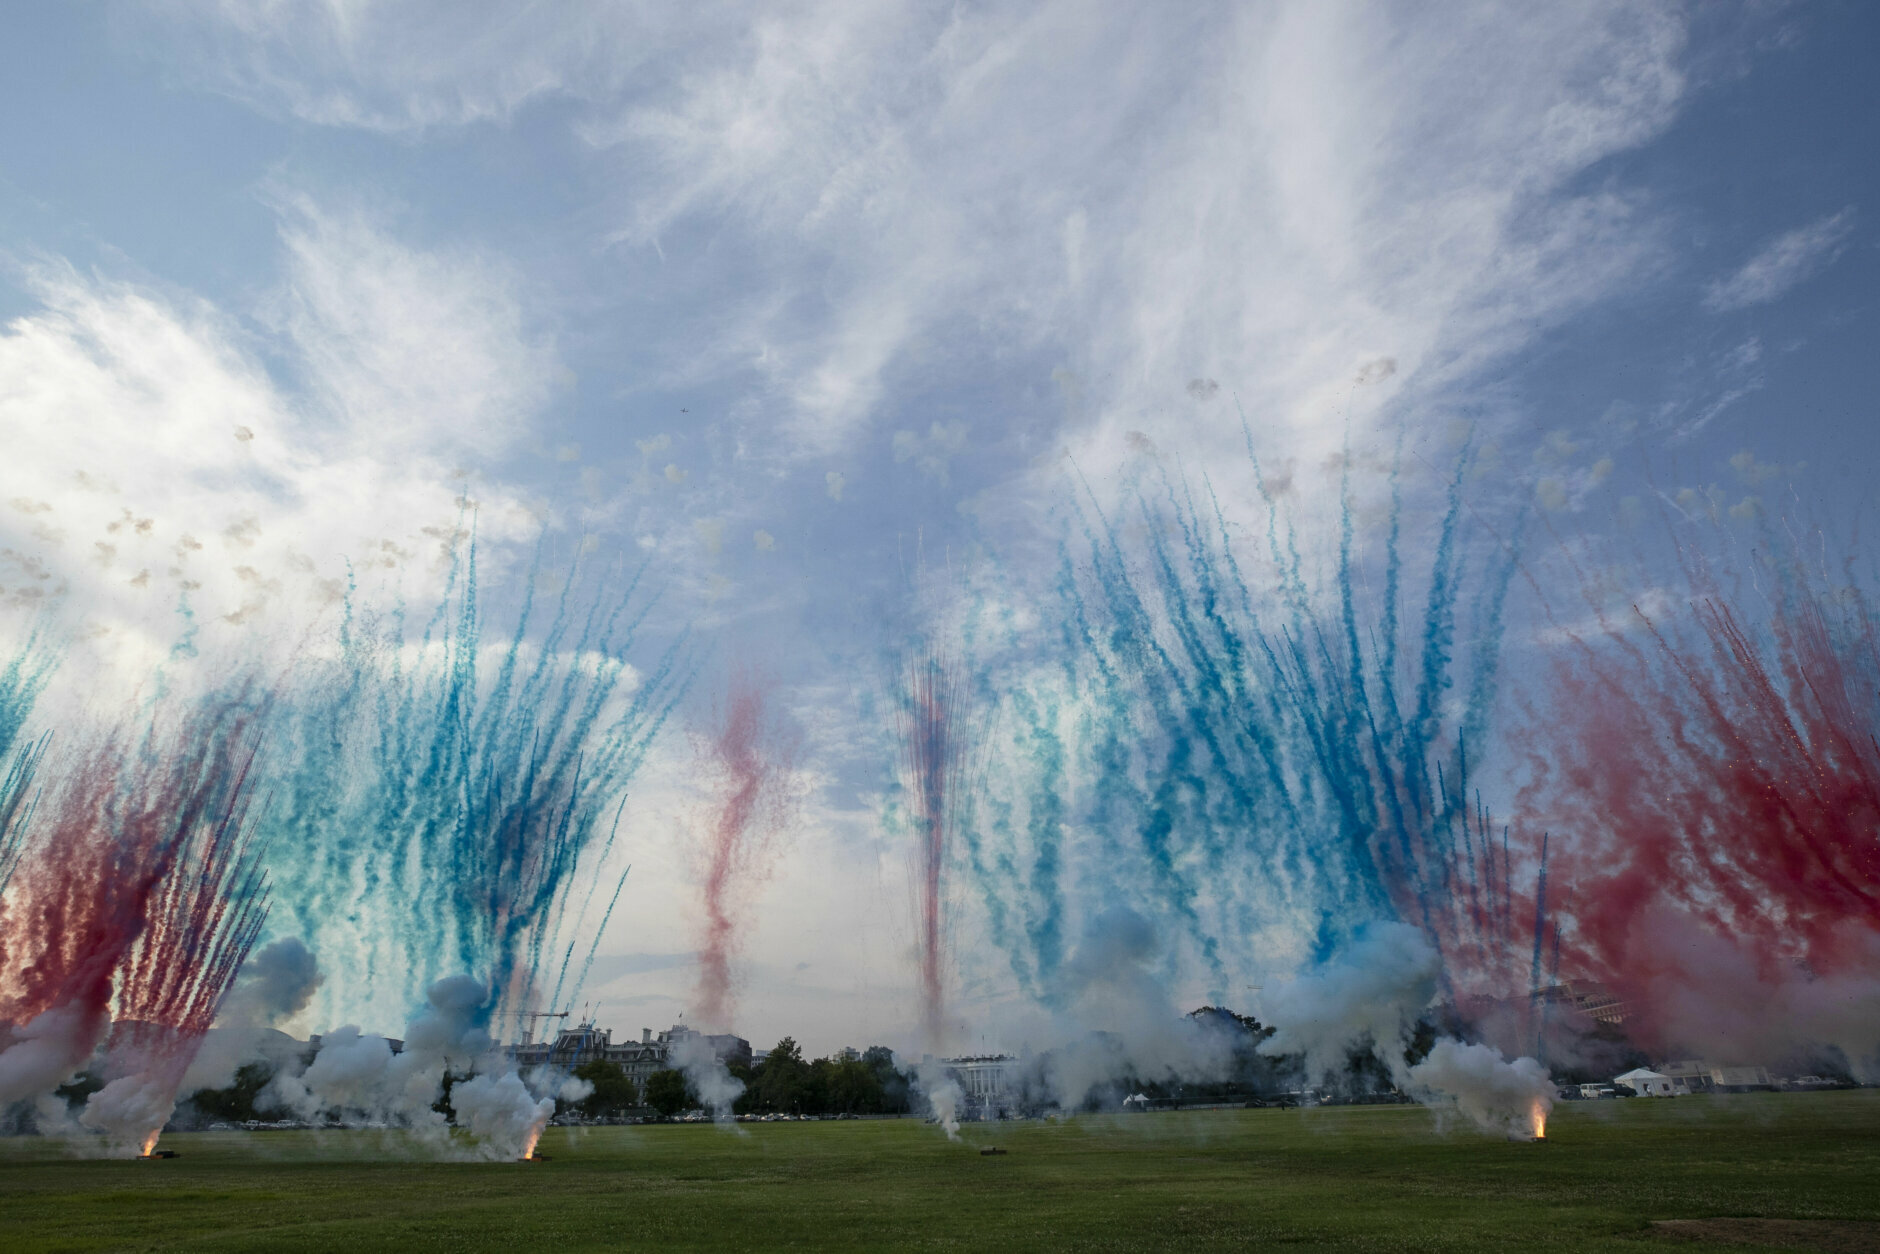 """The White House, center, is obscured by Red and Blue smoke from fireworks on the Ellipse during a """"Salute to America"""" event on the South Lawn of the White House, Saturday, July 4, 2020, in Washington. (AP Photo/Alex Brandon)"""